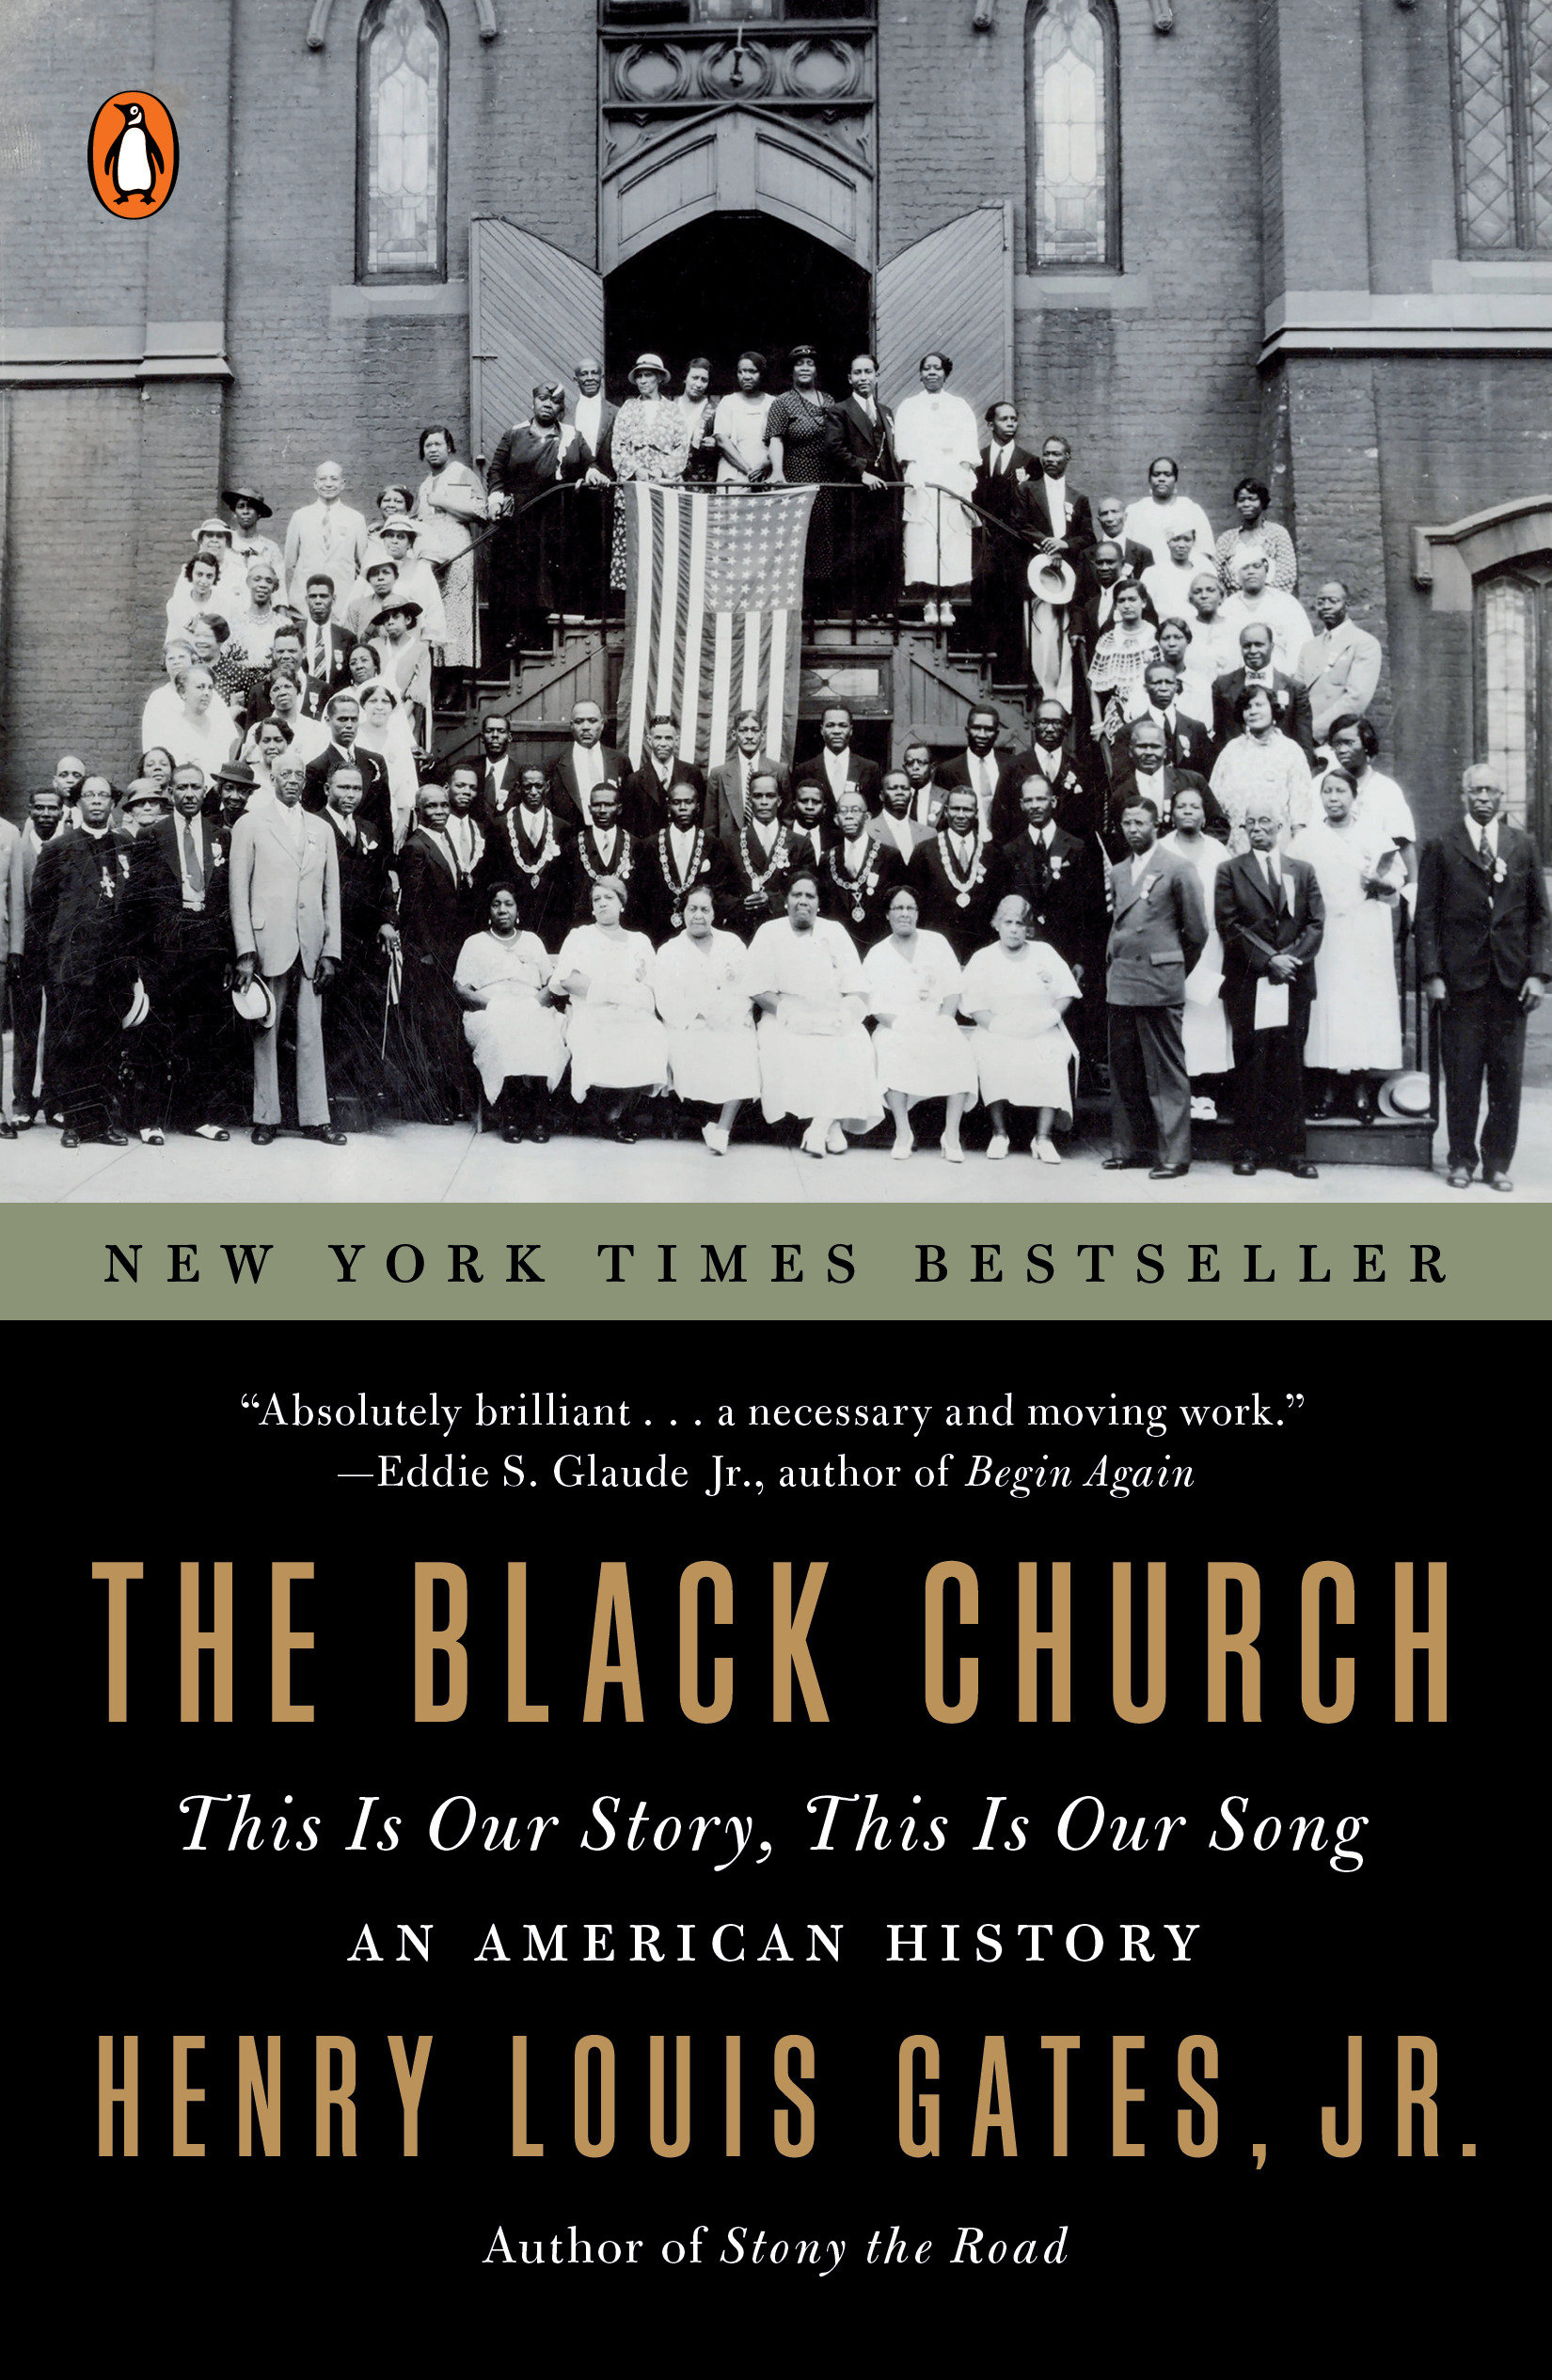 The Black Church This Is Our Story, This Is Our Song